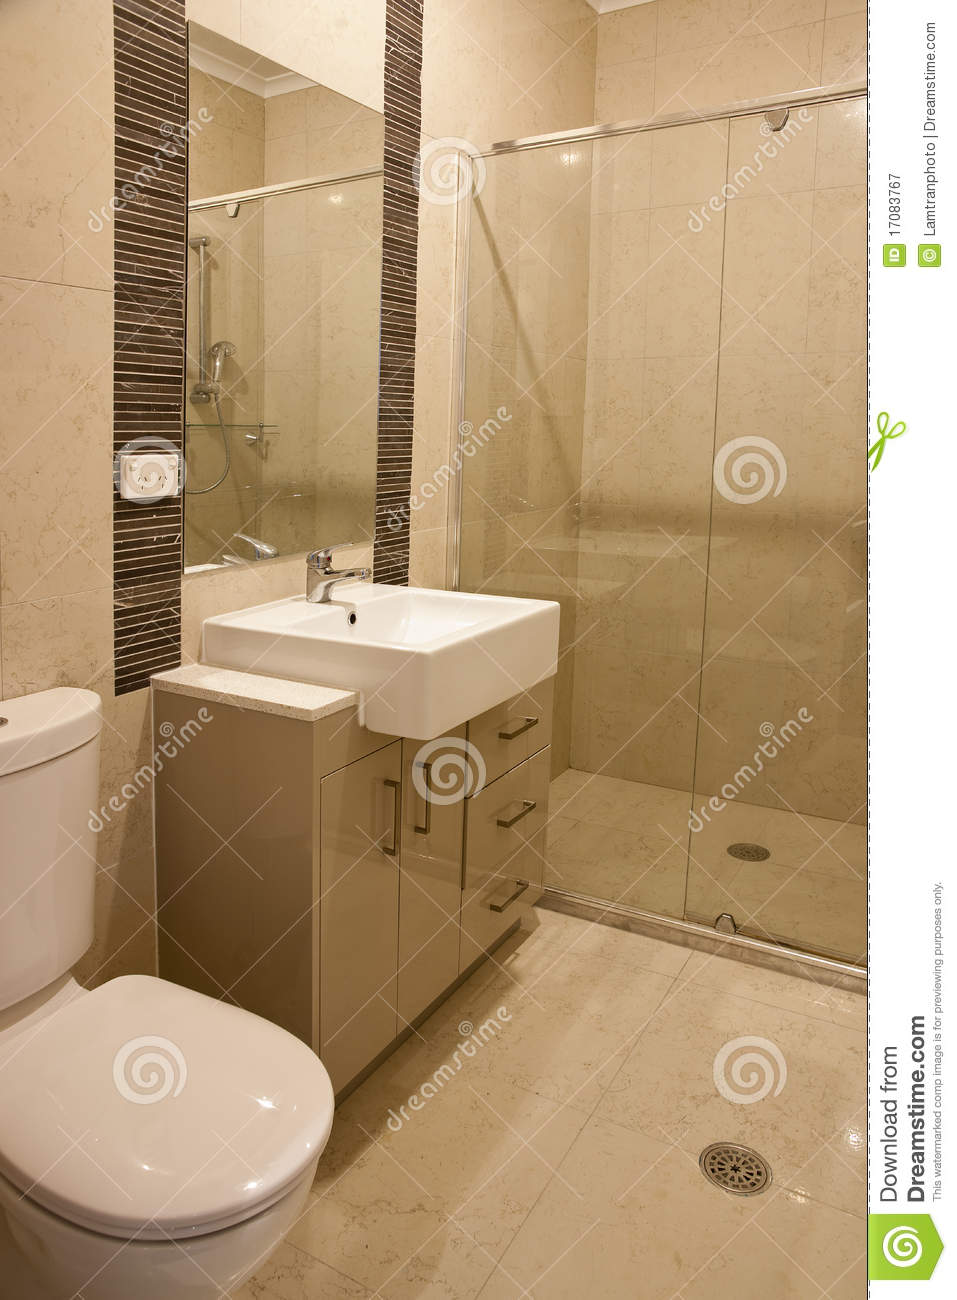 Bathroom Royalty Free Stock Photography Image 17083767